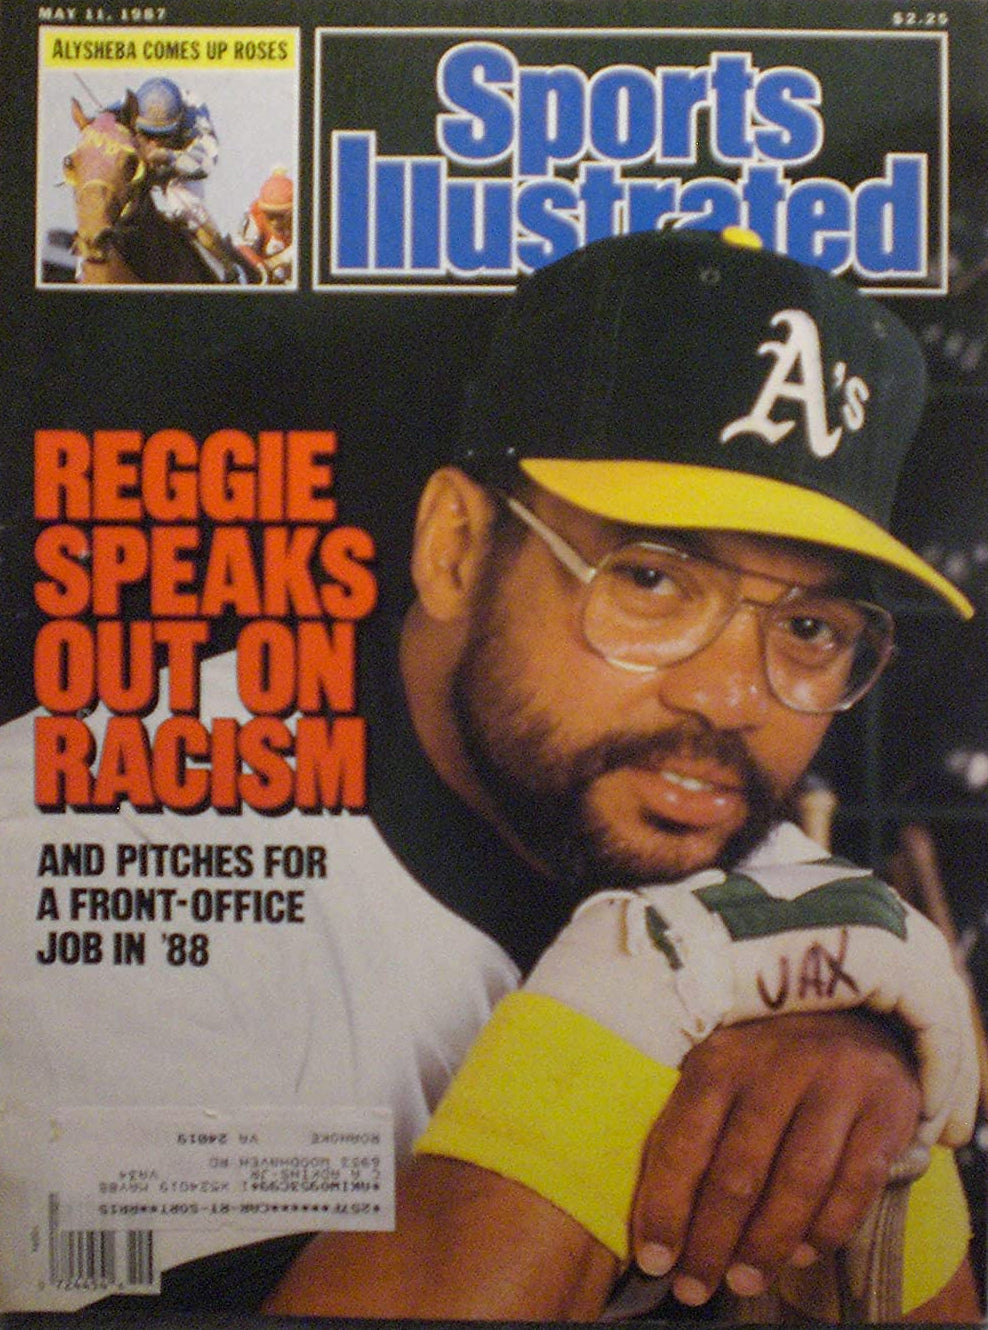 Reggie Jackson Speaks out on Racism